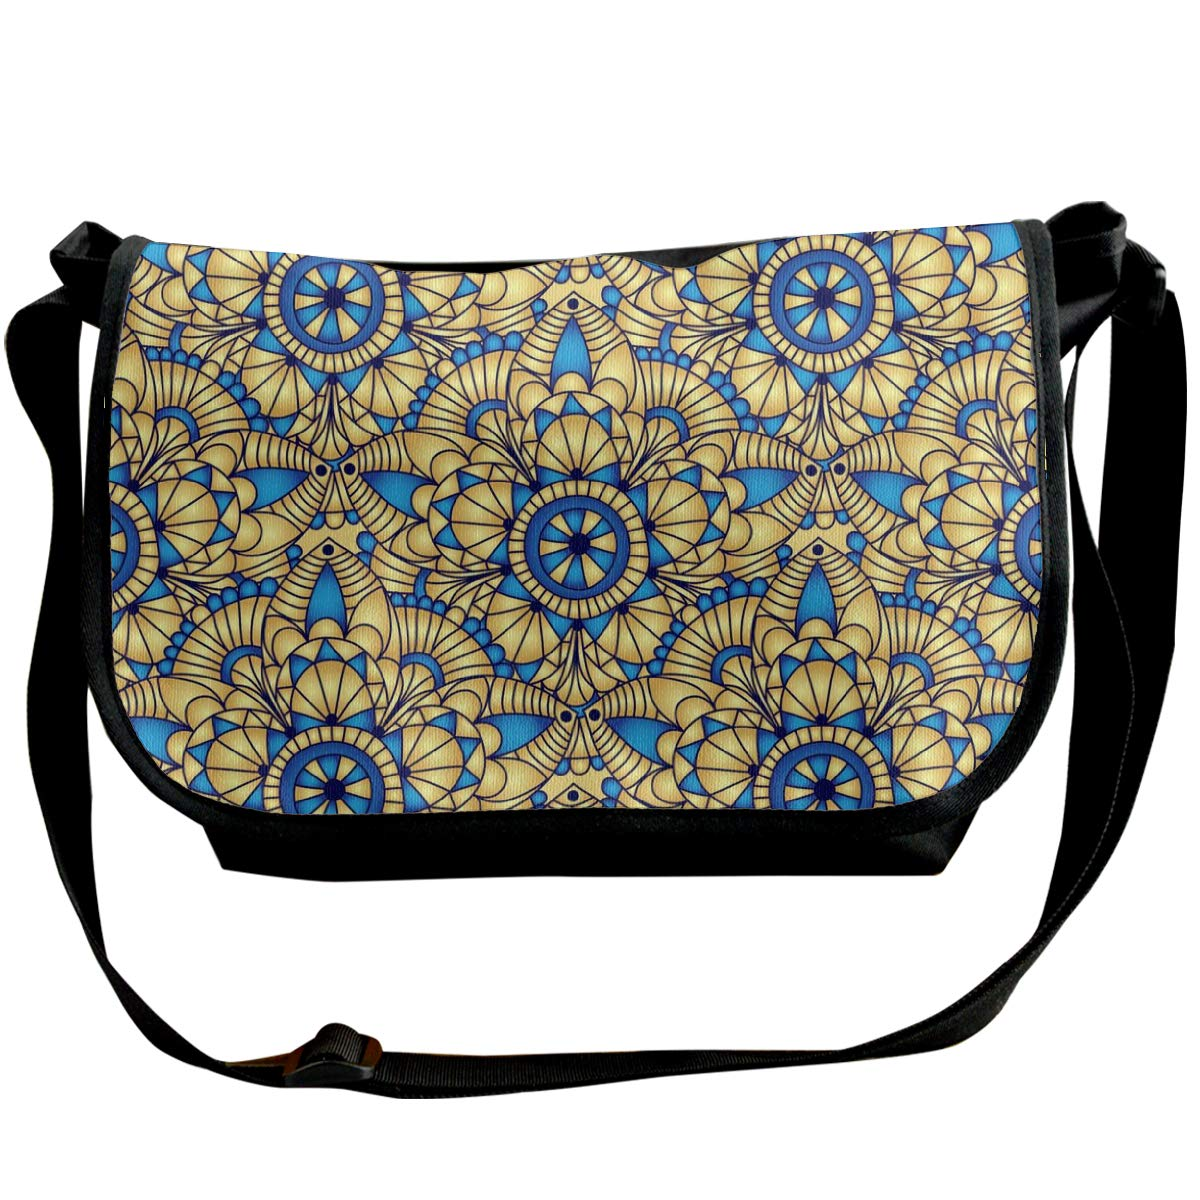 Taslilye Vintage Seamless Gold Pattern Vector Image Personalized Wide Crossbody Shoulder Bag For Men And Women For Daily Work Or Travel